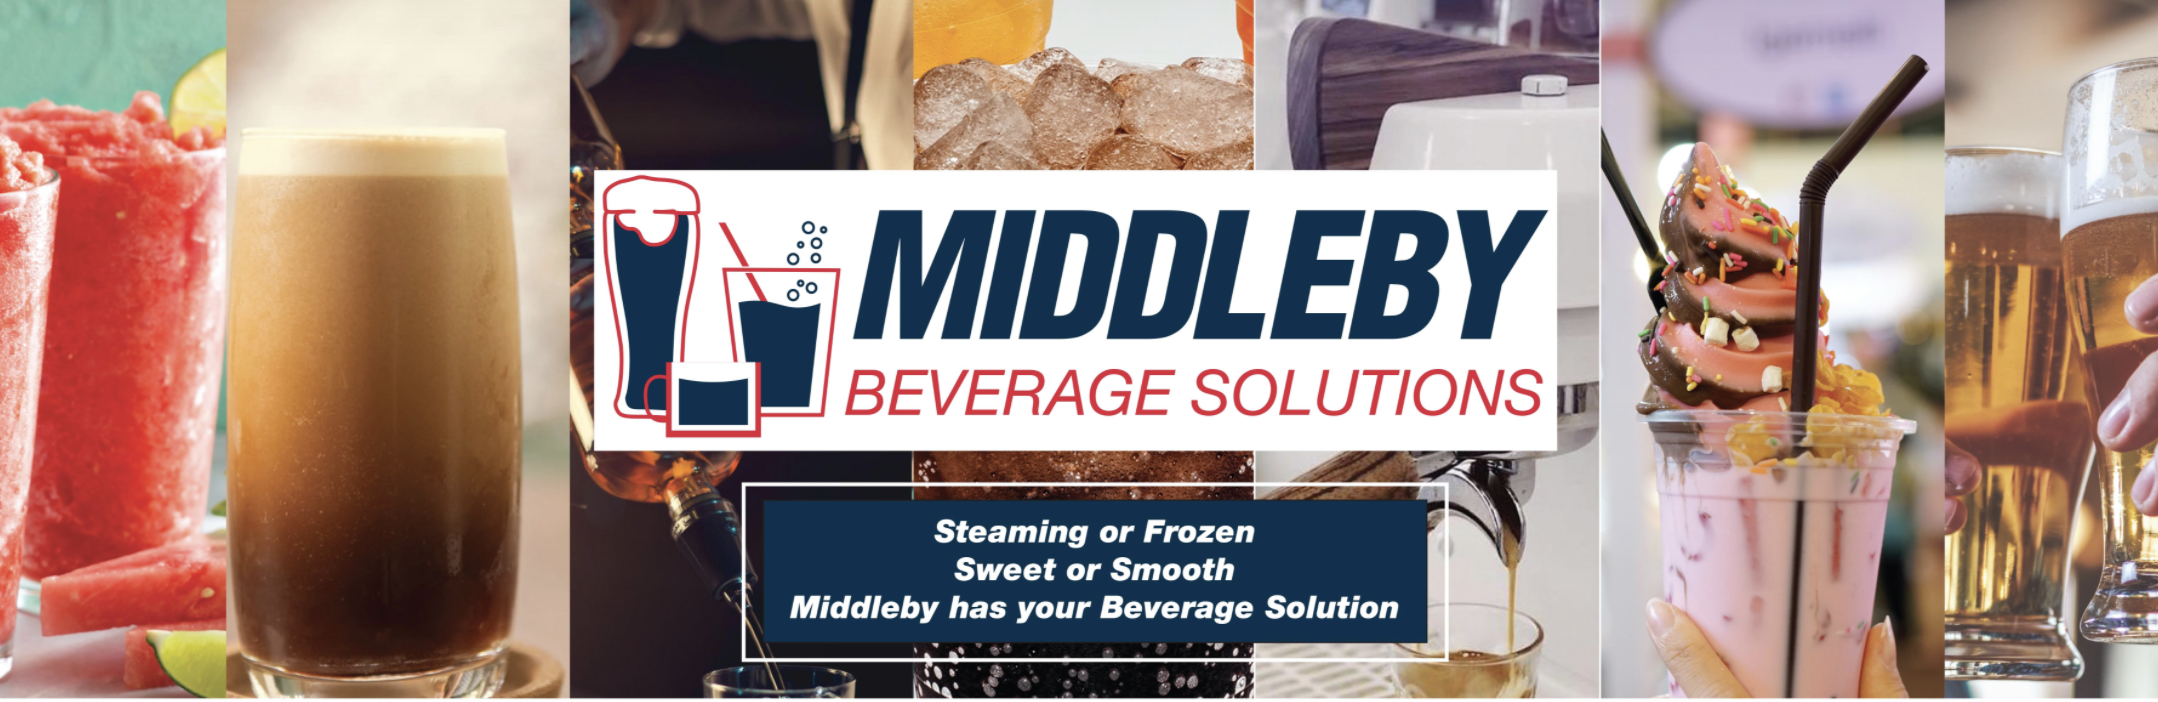 New Middleby Beverage Brands